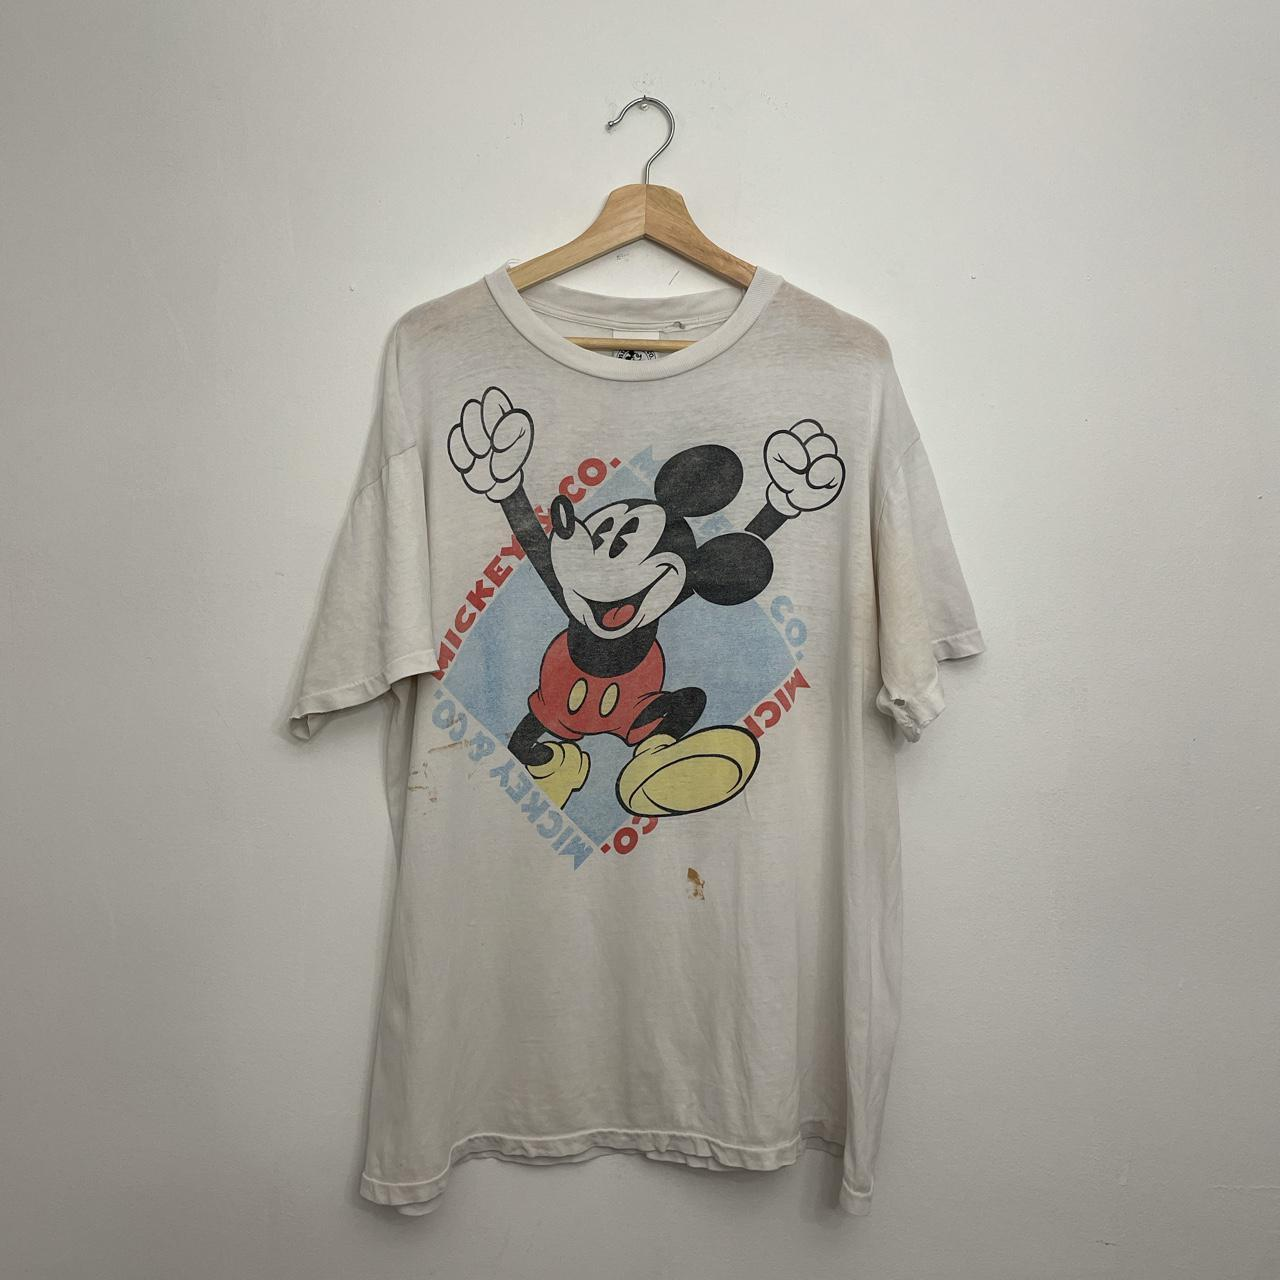 Product Image 1 - Vintage Mickey Mouse & Co